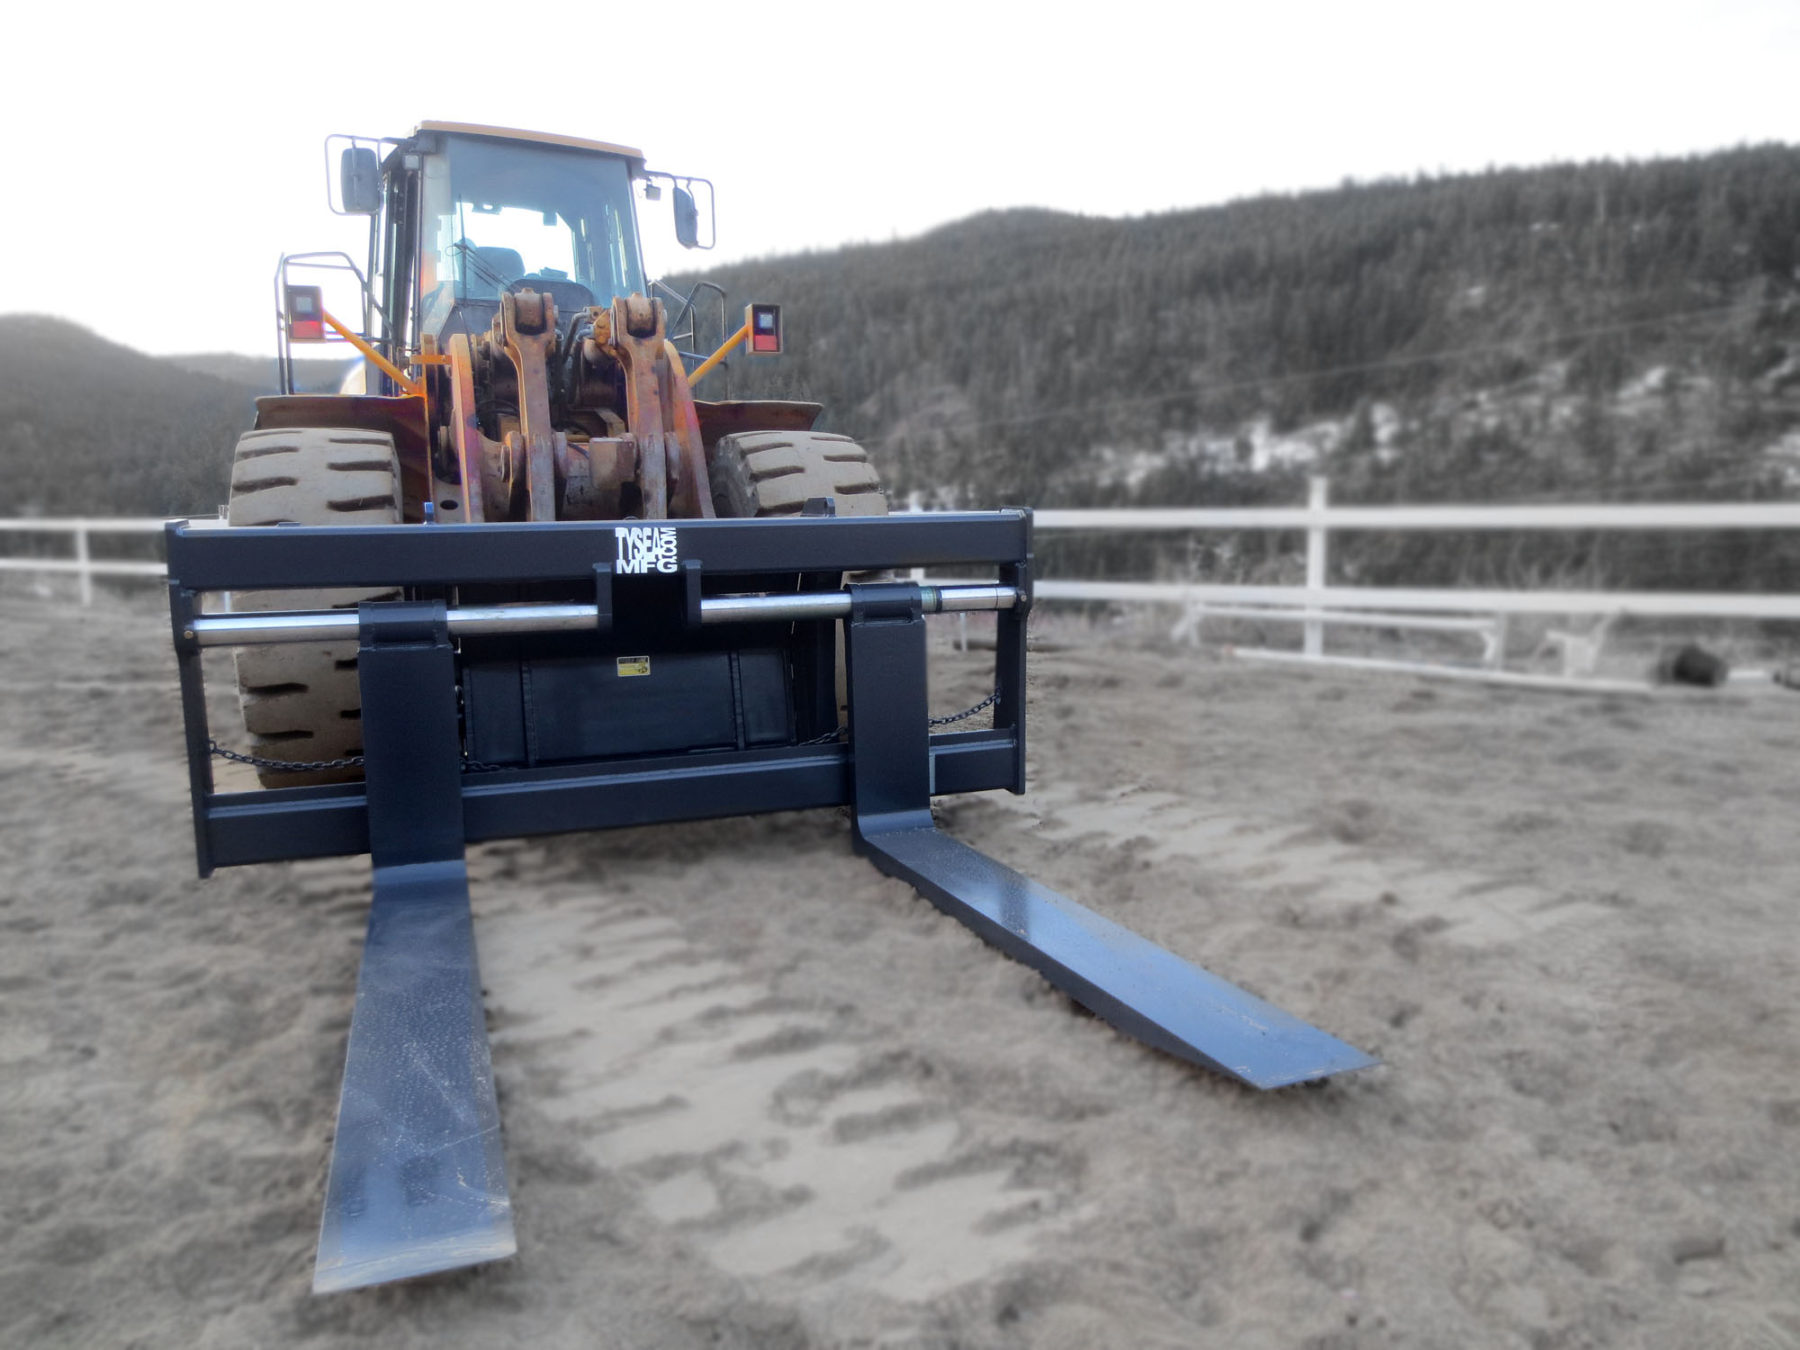 Wheel loader pallet forks for loaders, dozers and crawlers